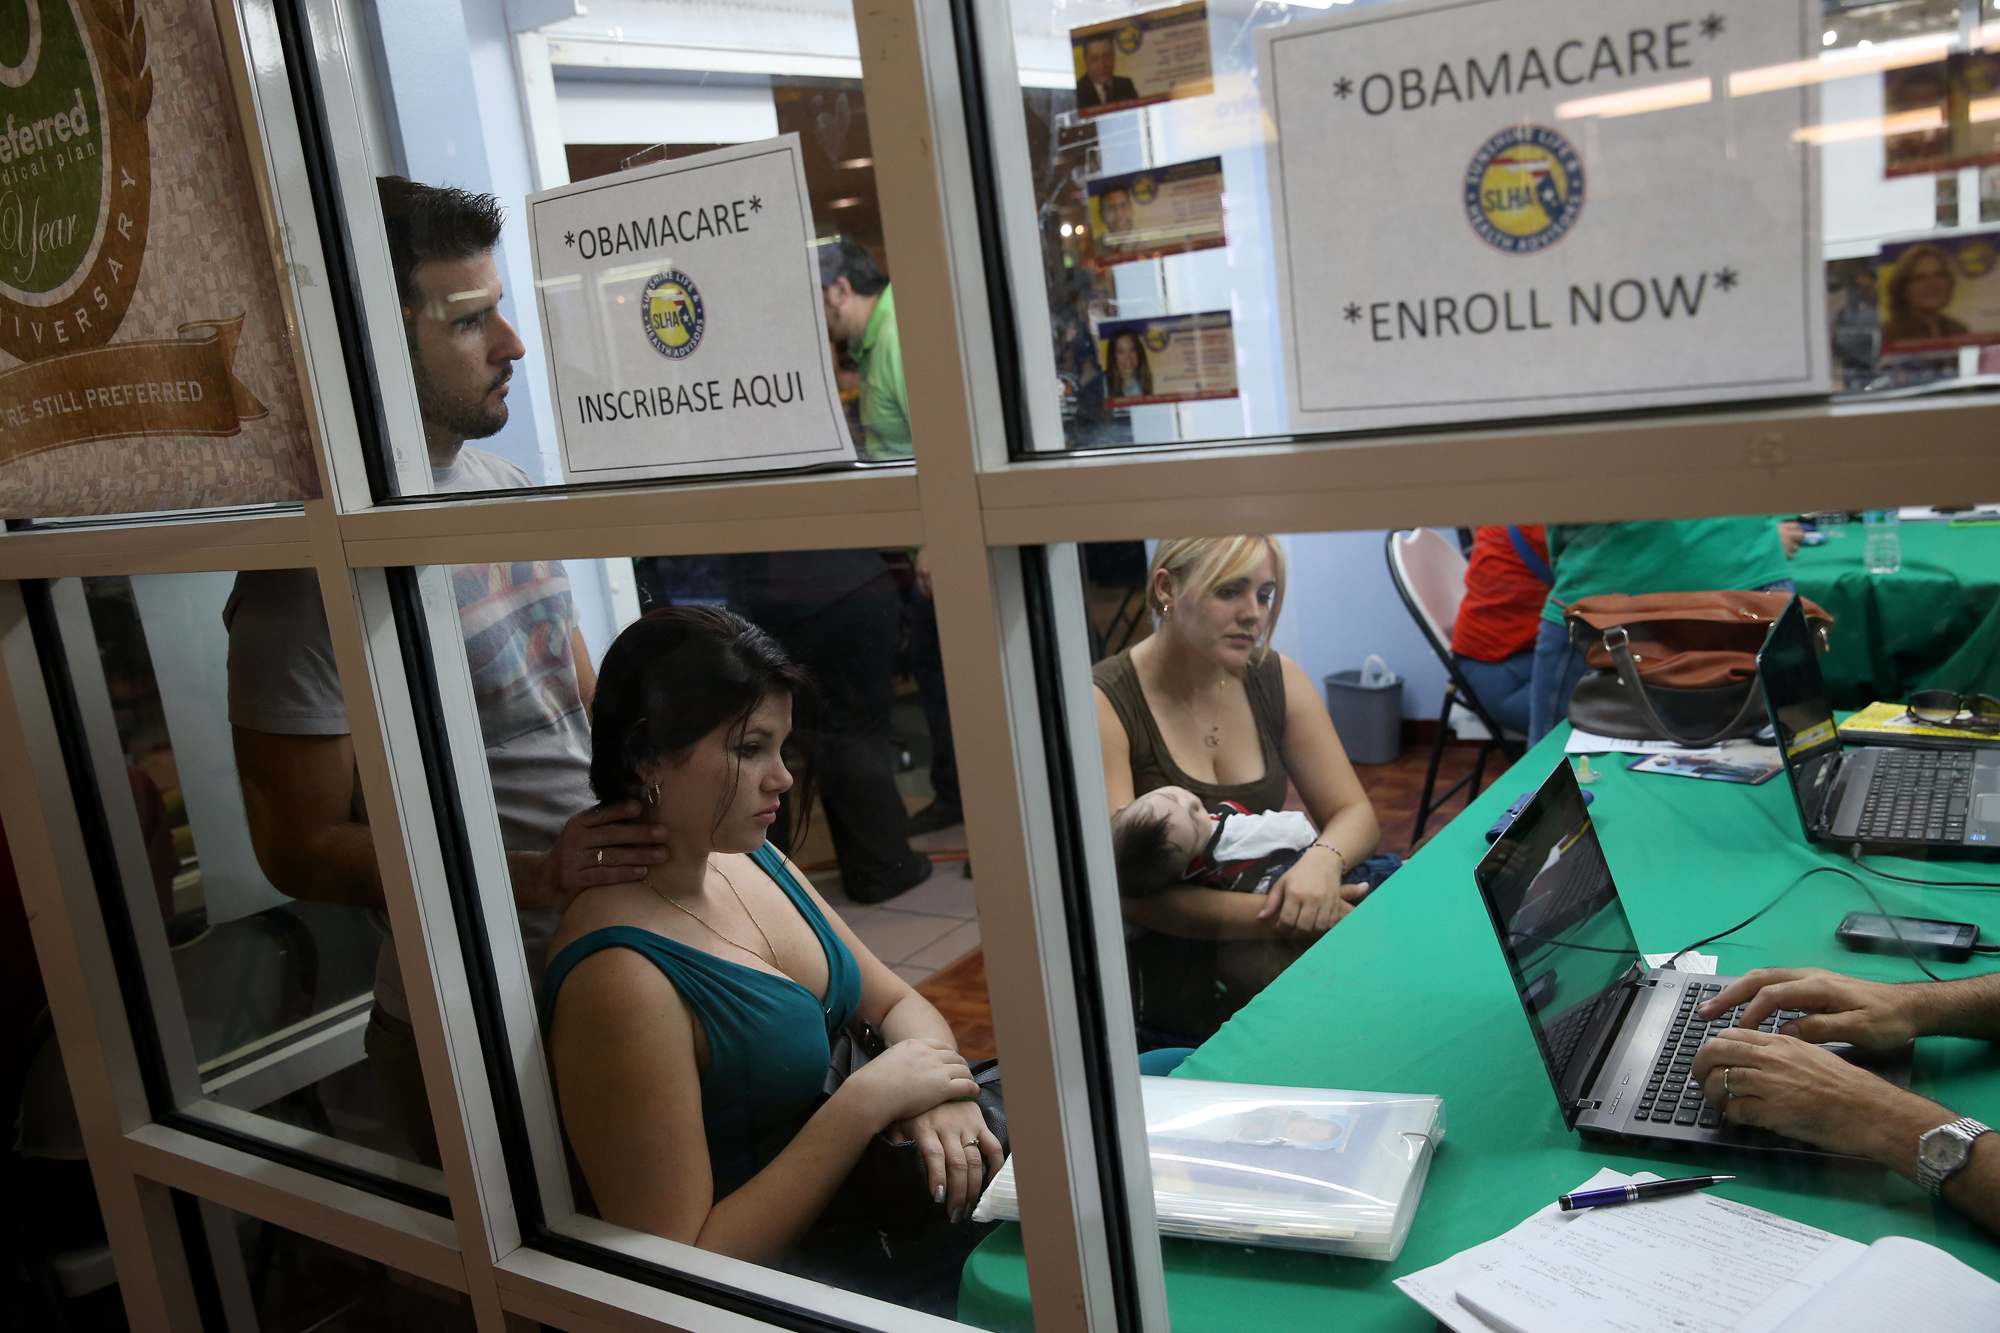 People buying health insurance under the Affordable Care Act at the Mall of Americas on Jan. 15, 2014 in Miami.